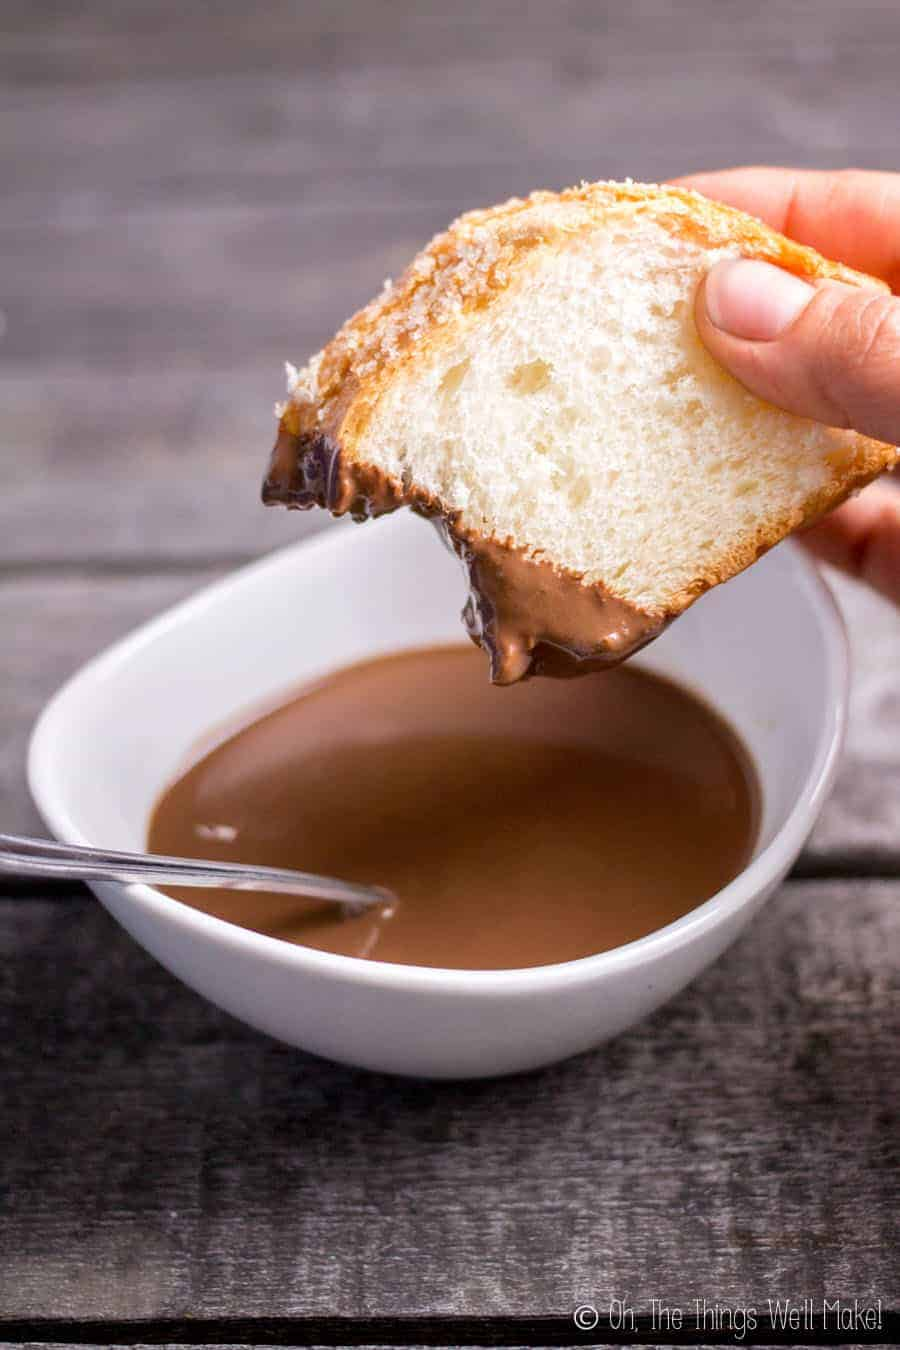 Dipping panquemado into Spanish hot chocolate